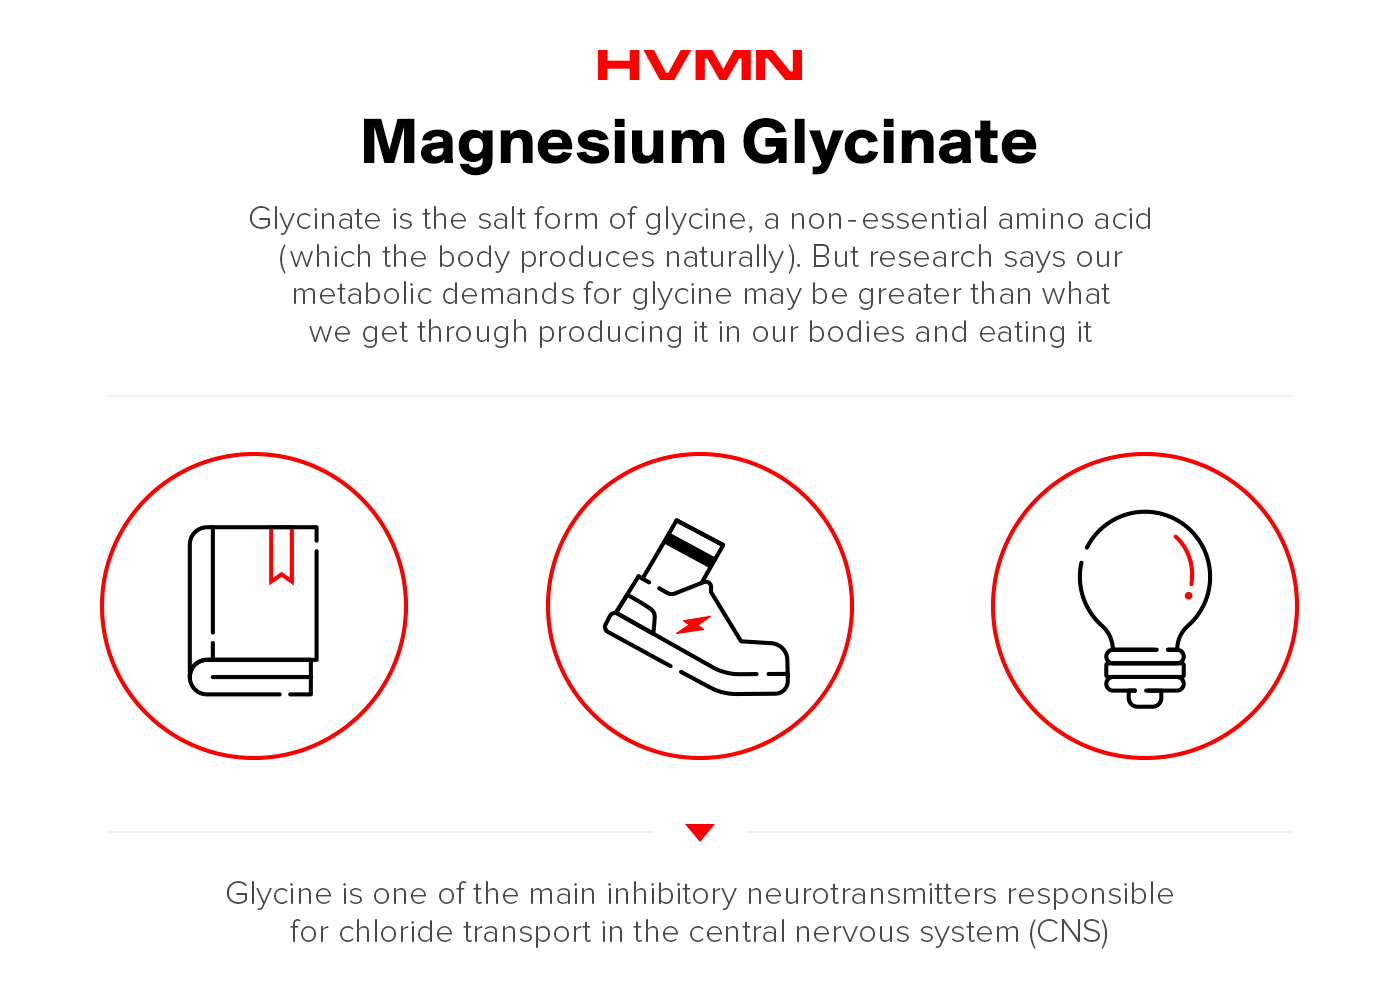 an illustration of a book, a runner's good and a lightbulb, showing all the benefits of magnesium glycinate